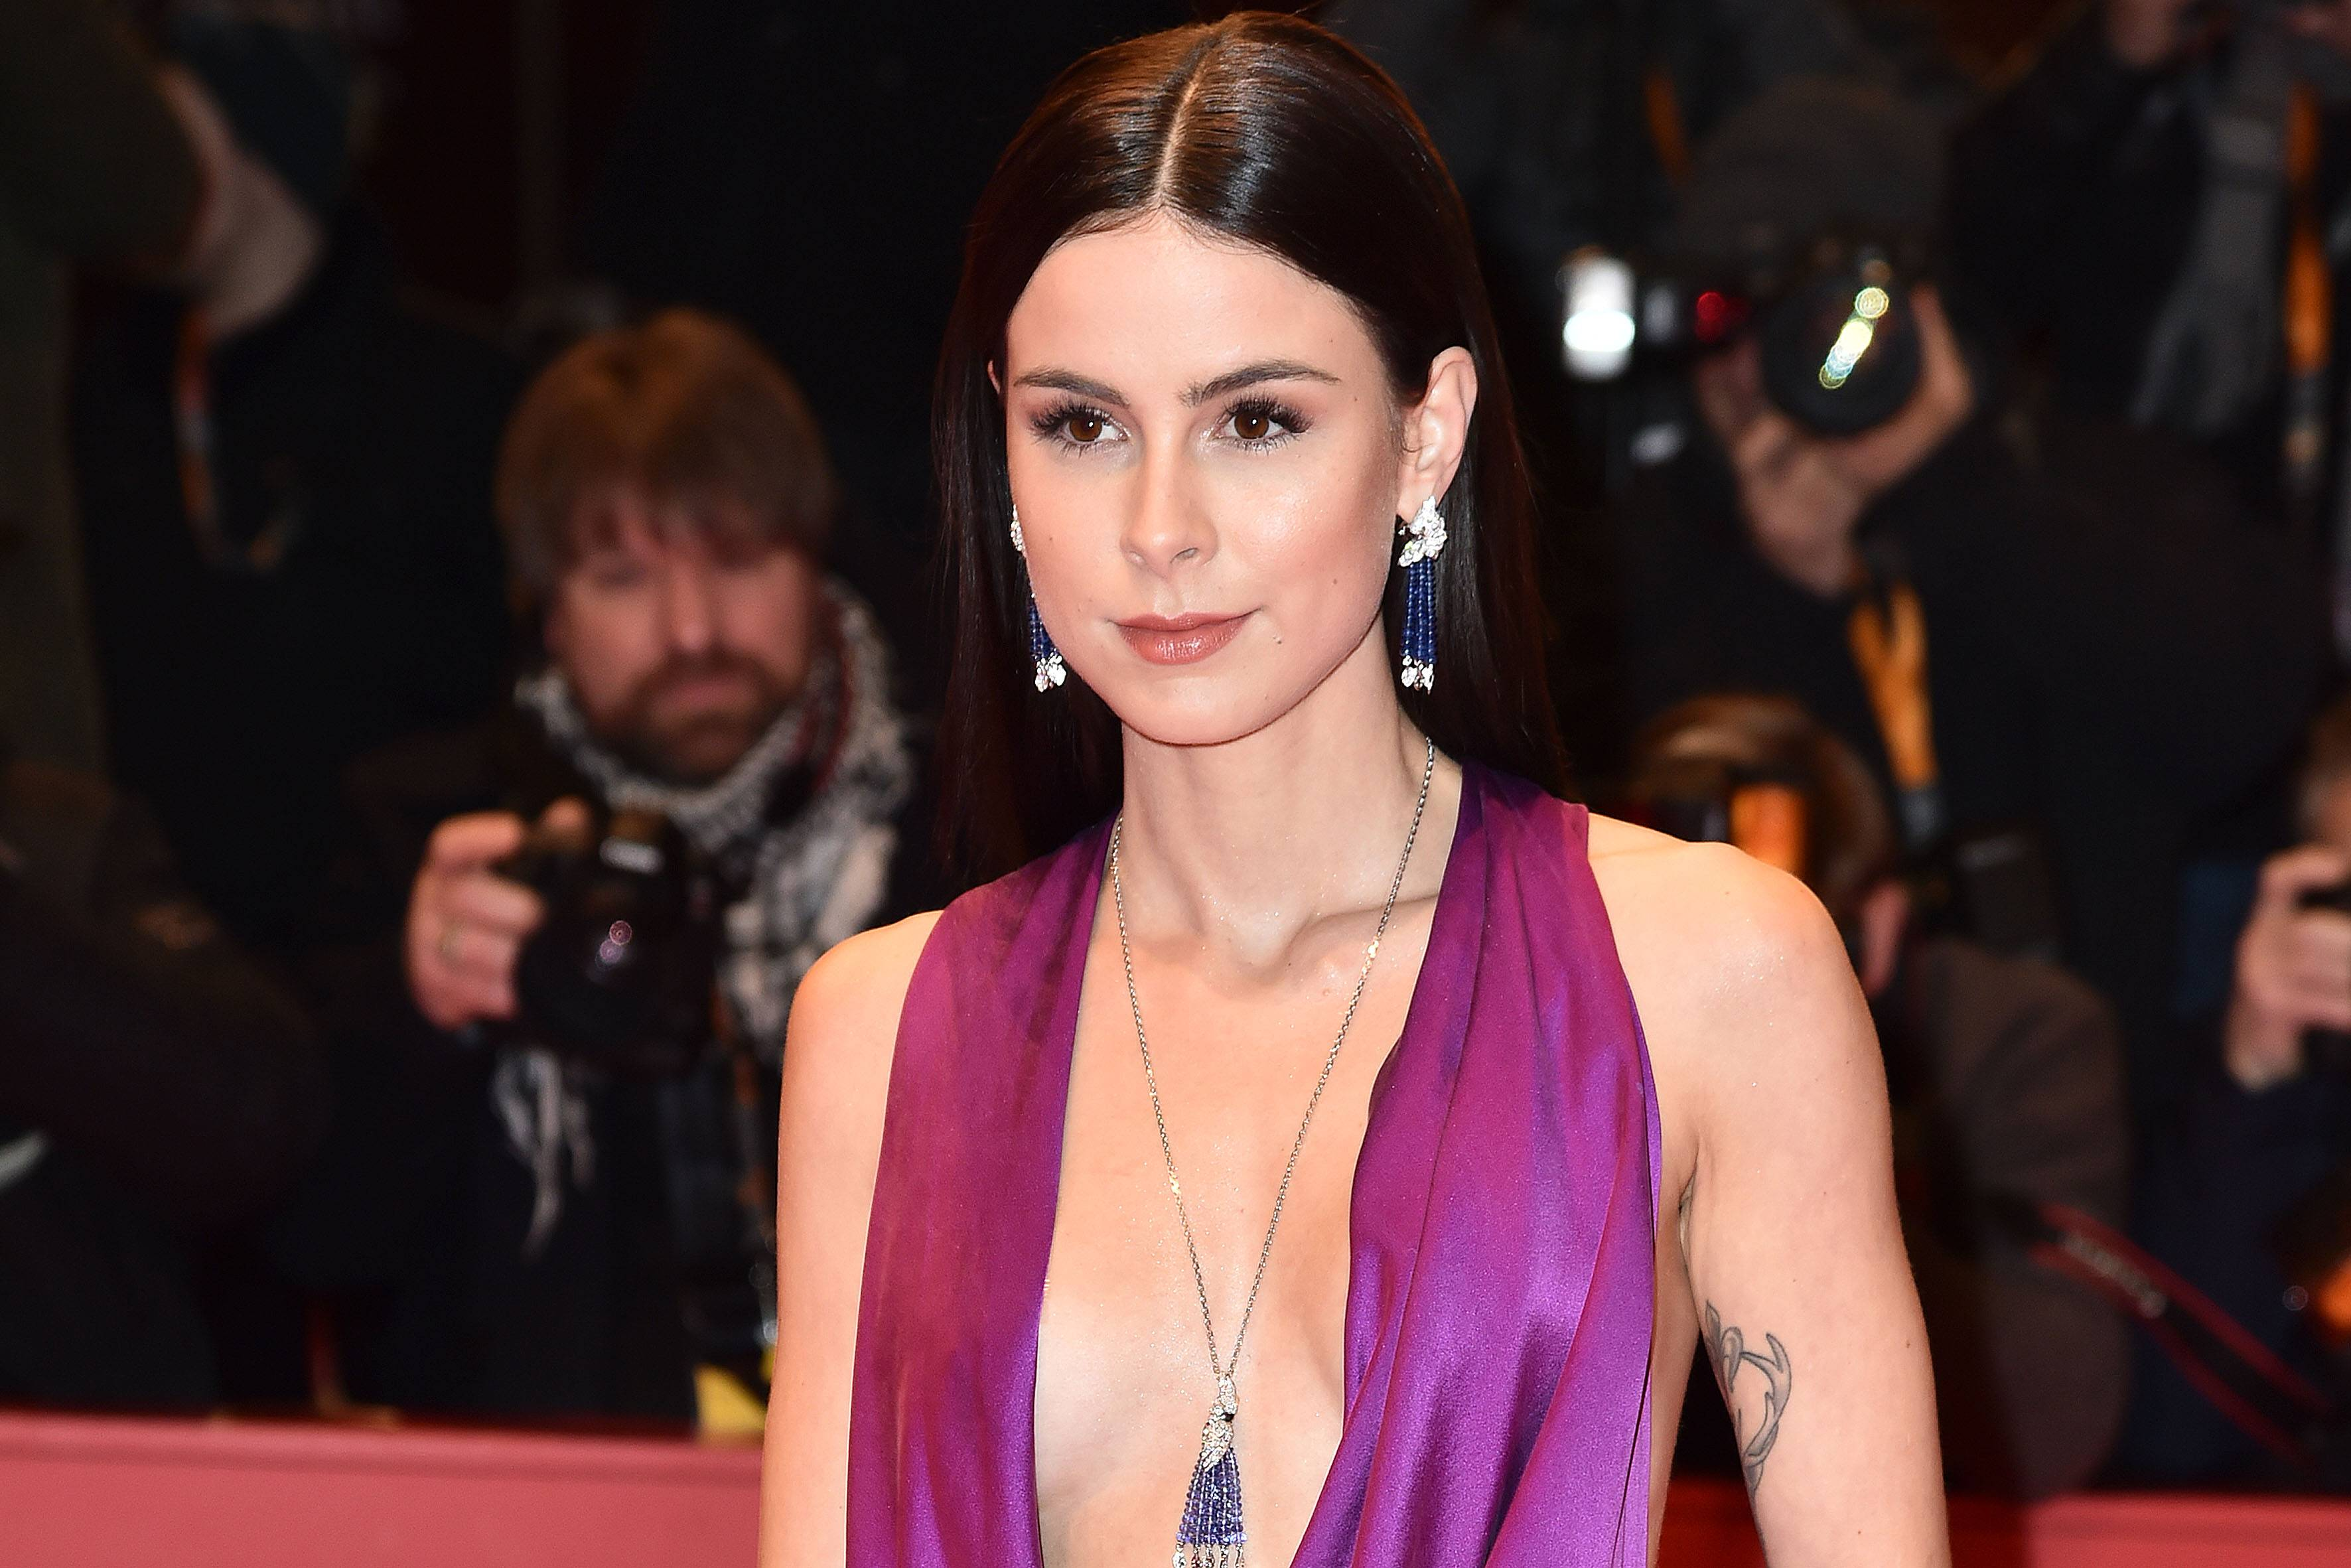 Sideboobs Lena Meyer Landrut nude (86 foto and video), Topless, Hot, Feet, swimsuit 2006